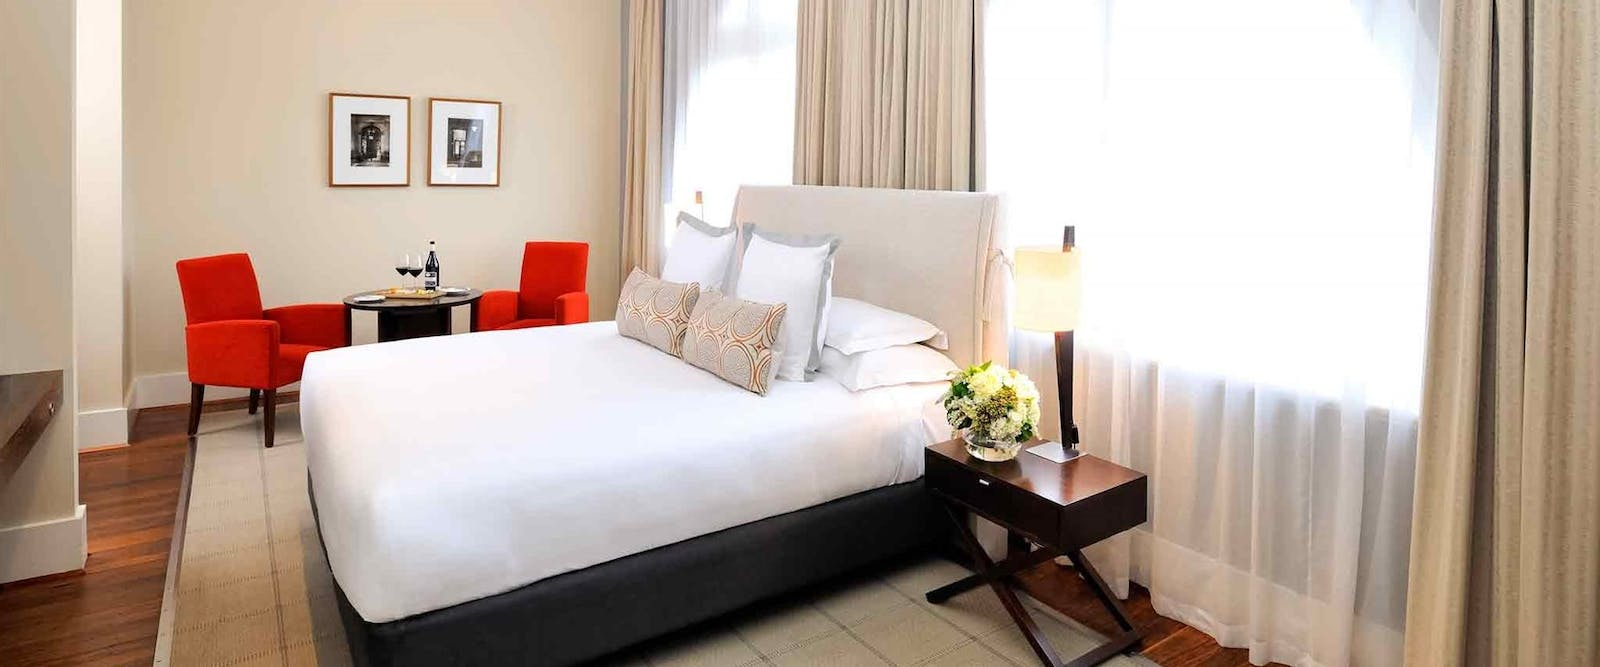 Deluxe room at Hotel Lindrum – McGallery by Sofitel